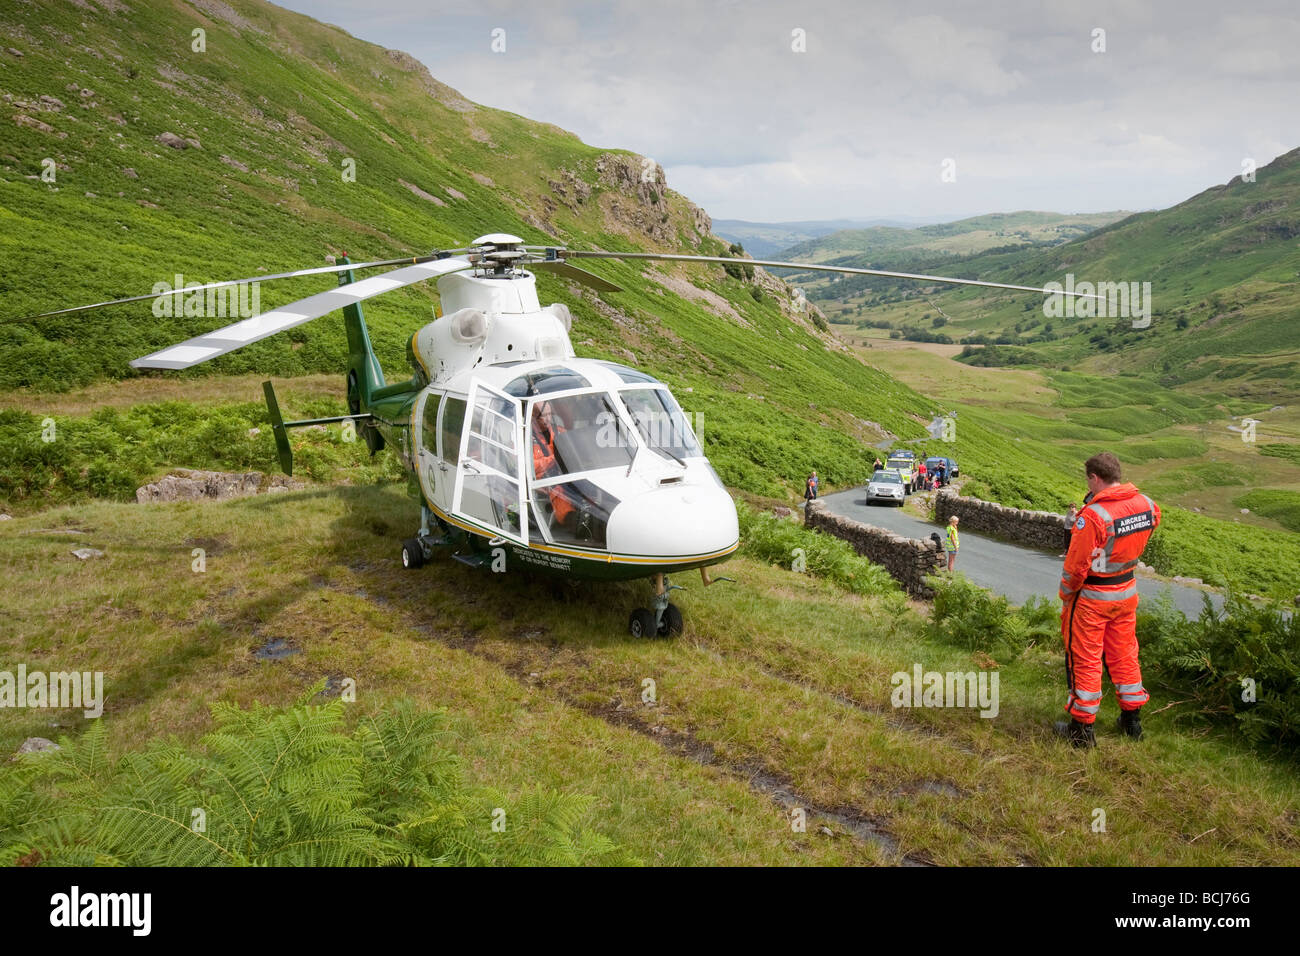 An Air Ambulance prepares to takes off with a casualty from a mountain rescue on Wrynose Pass, Lake District, UK - Stock Image